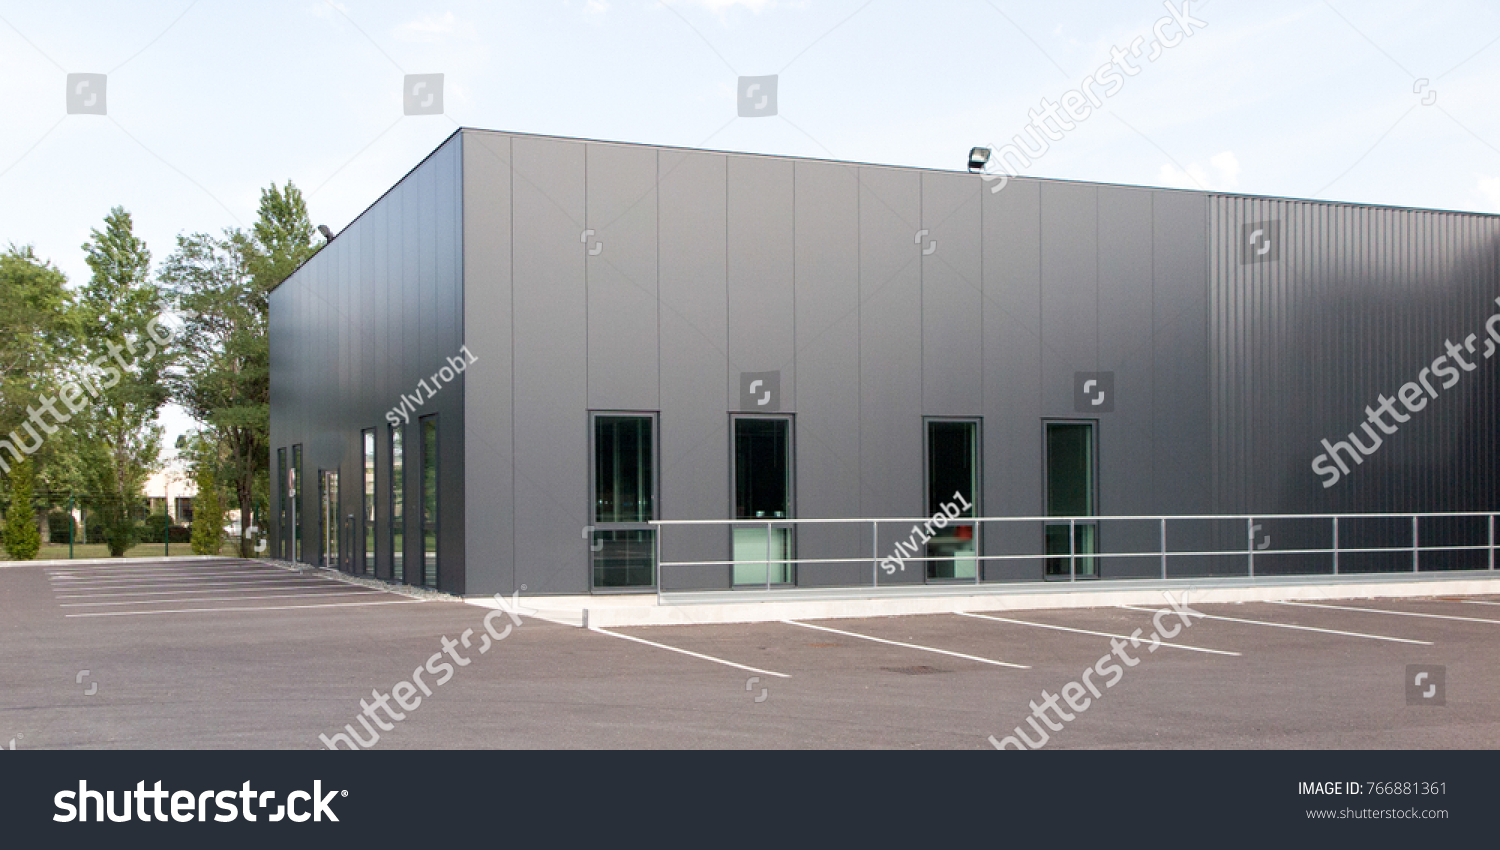 grey and green building for industry or business  #766881361